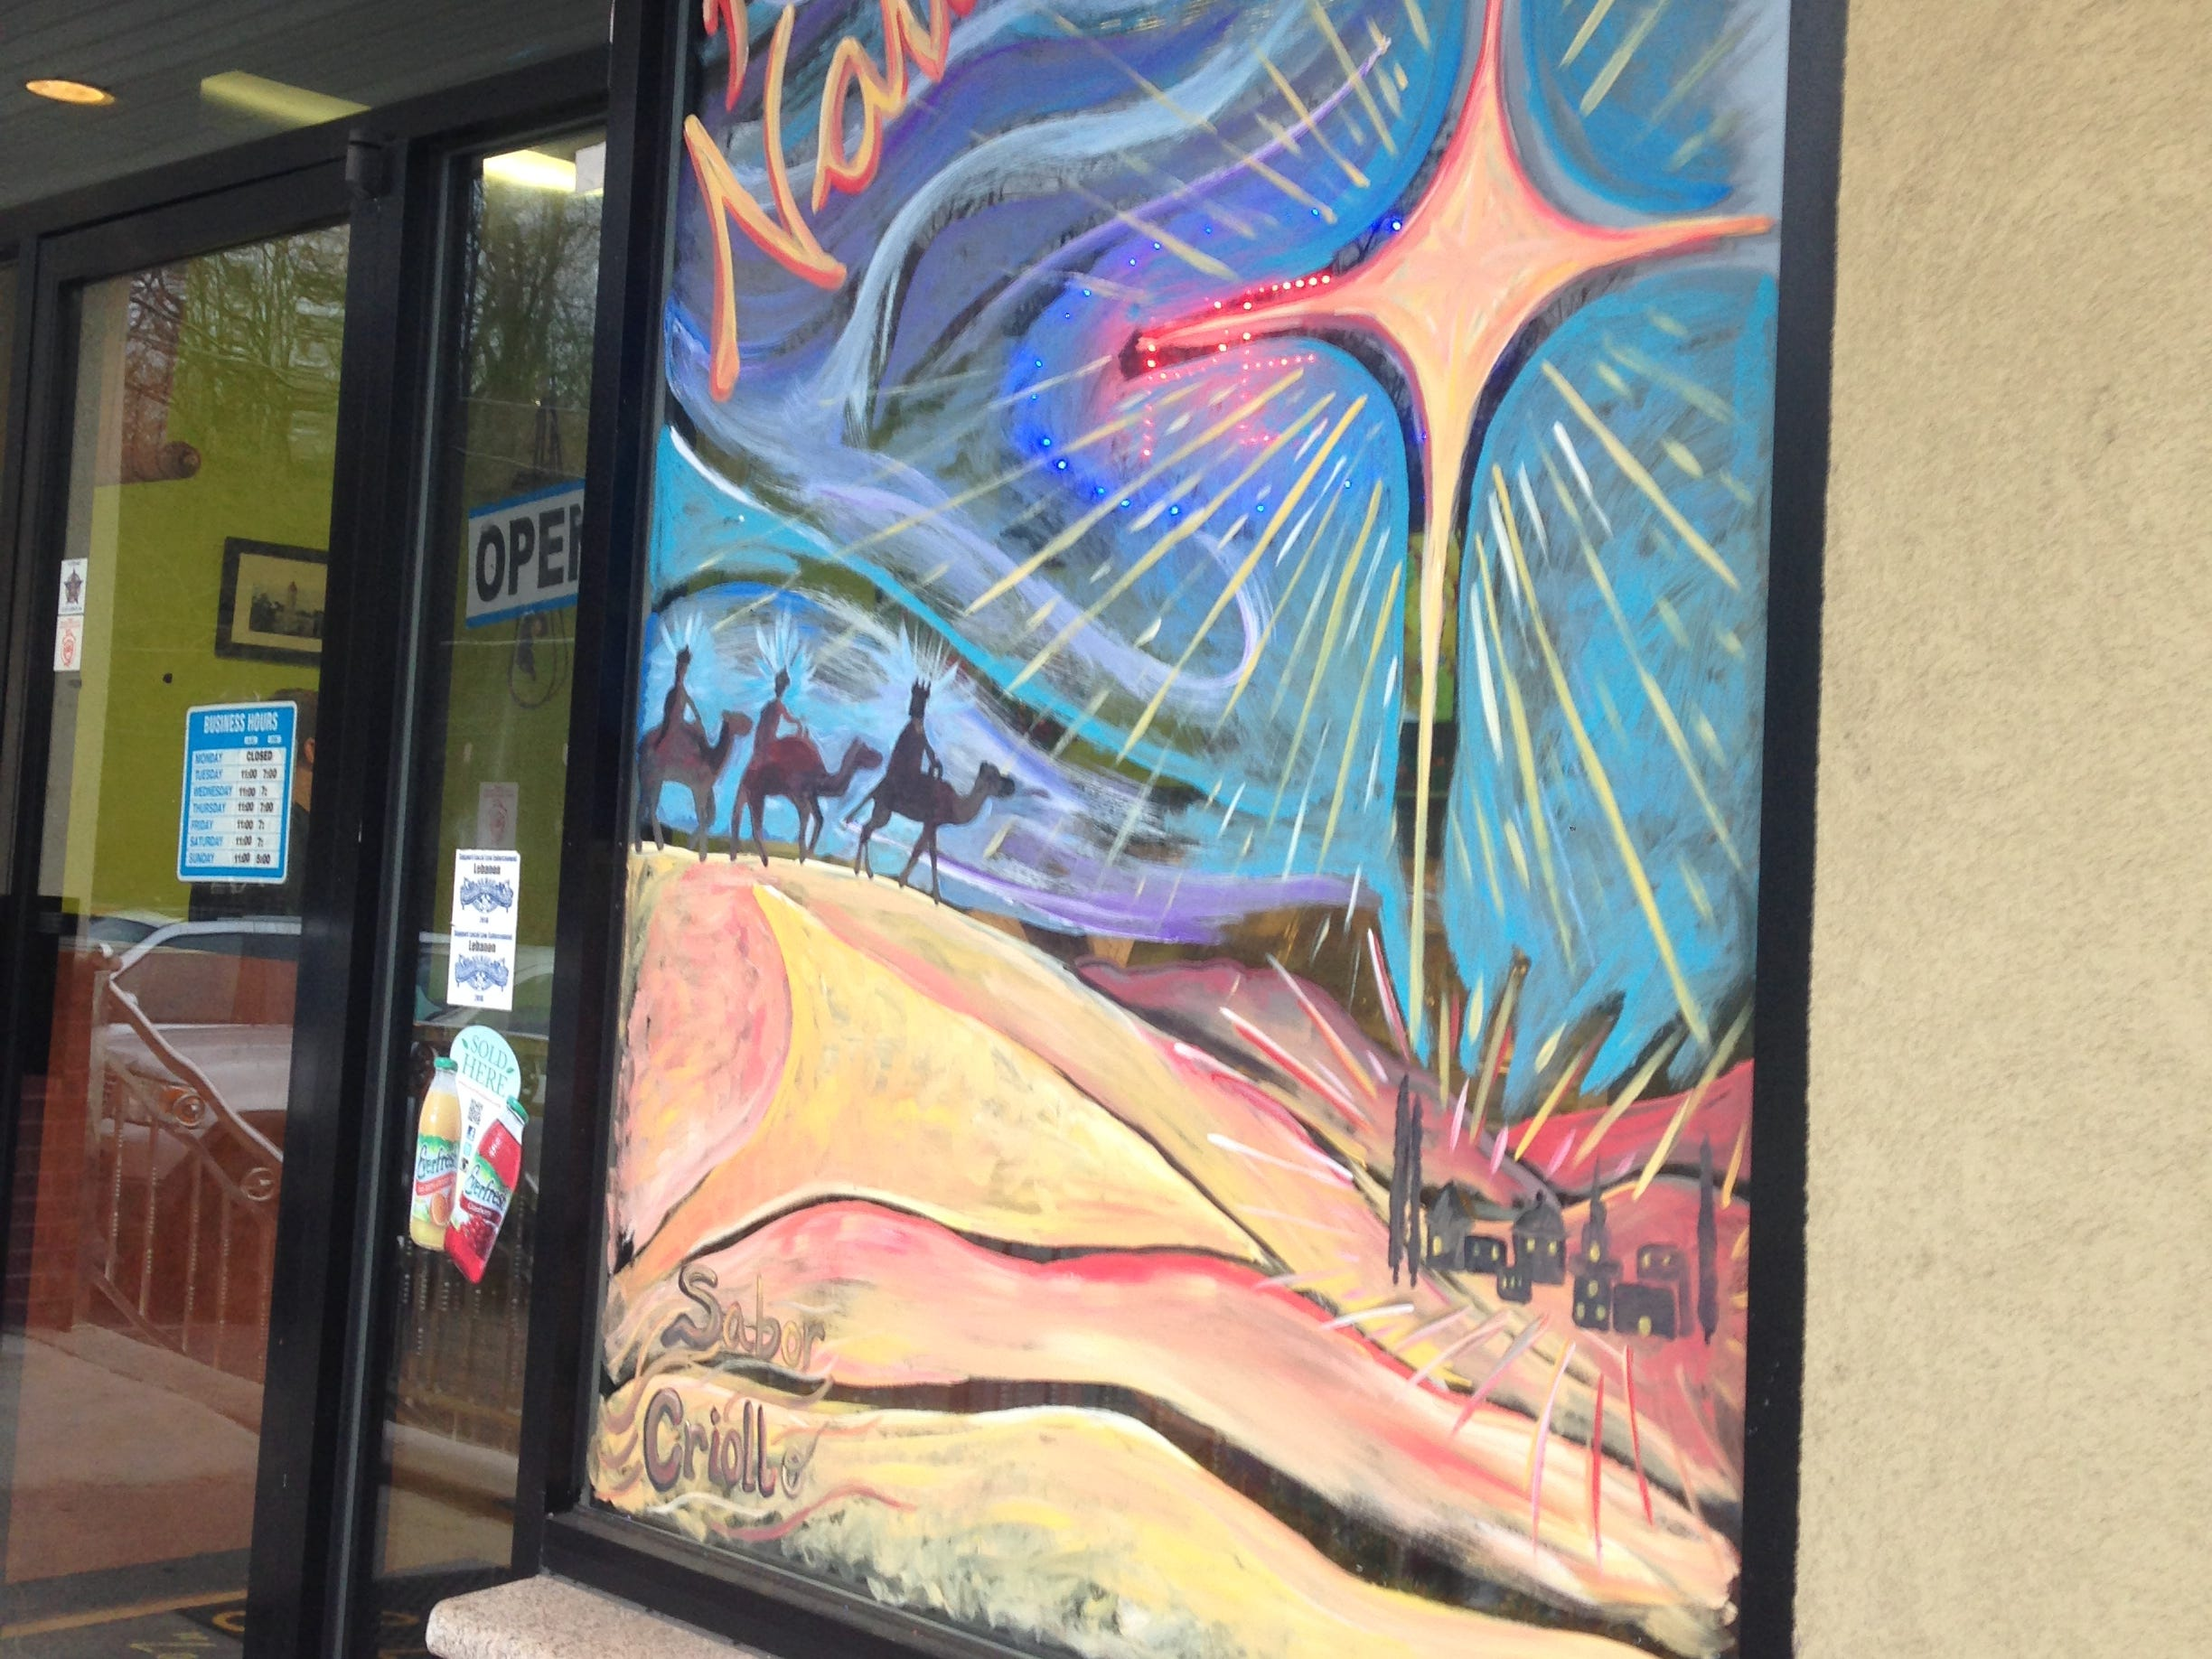 Storefront windows throughout downtown Lebanon have been painted to brighten up the community and have people feel better about what downtown Lebanon has to offer the community. the paintings have been done by Katie Trainer, with sponsorship assistance from Snitz Creek